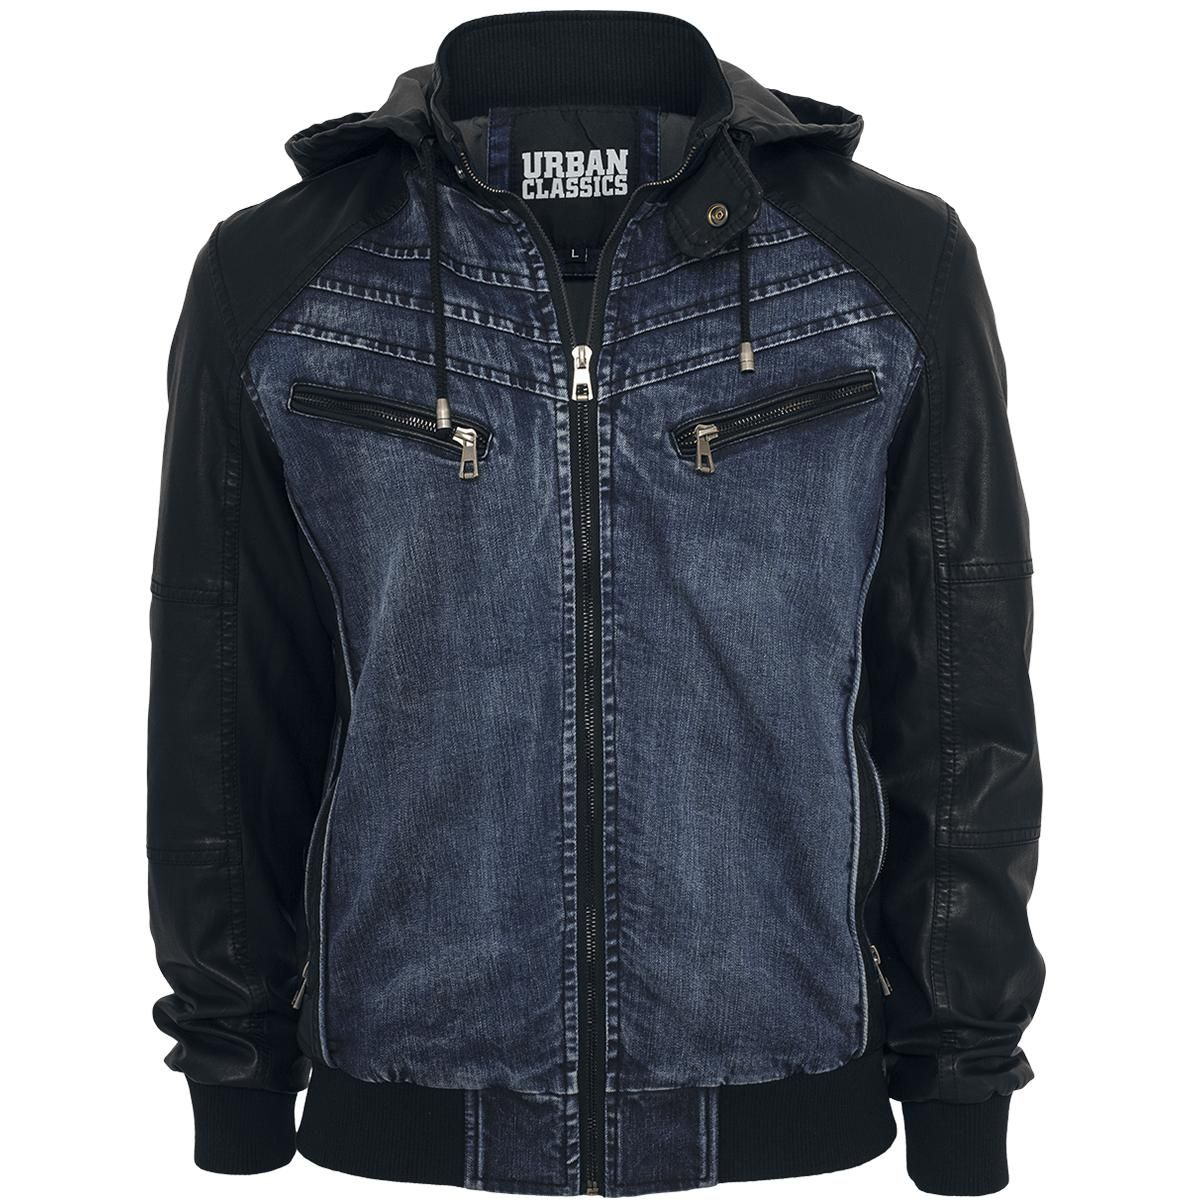 ab40006305f9 Hooded Denim Leatherlook Jacket - Jacket by Urban Classics - Article  Number: 270446 - from 73.99 € - EMP Merchandising ::: The Heavy Metal M..